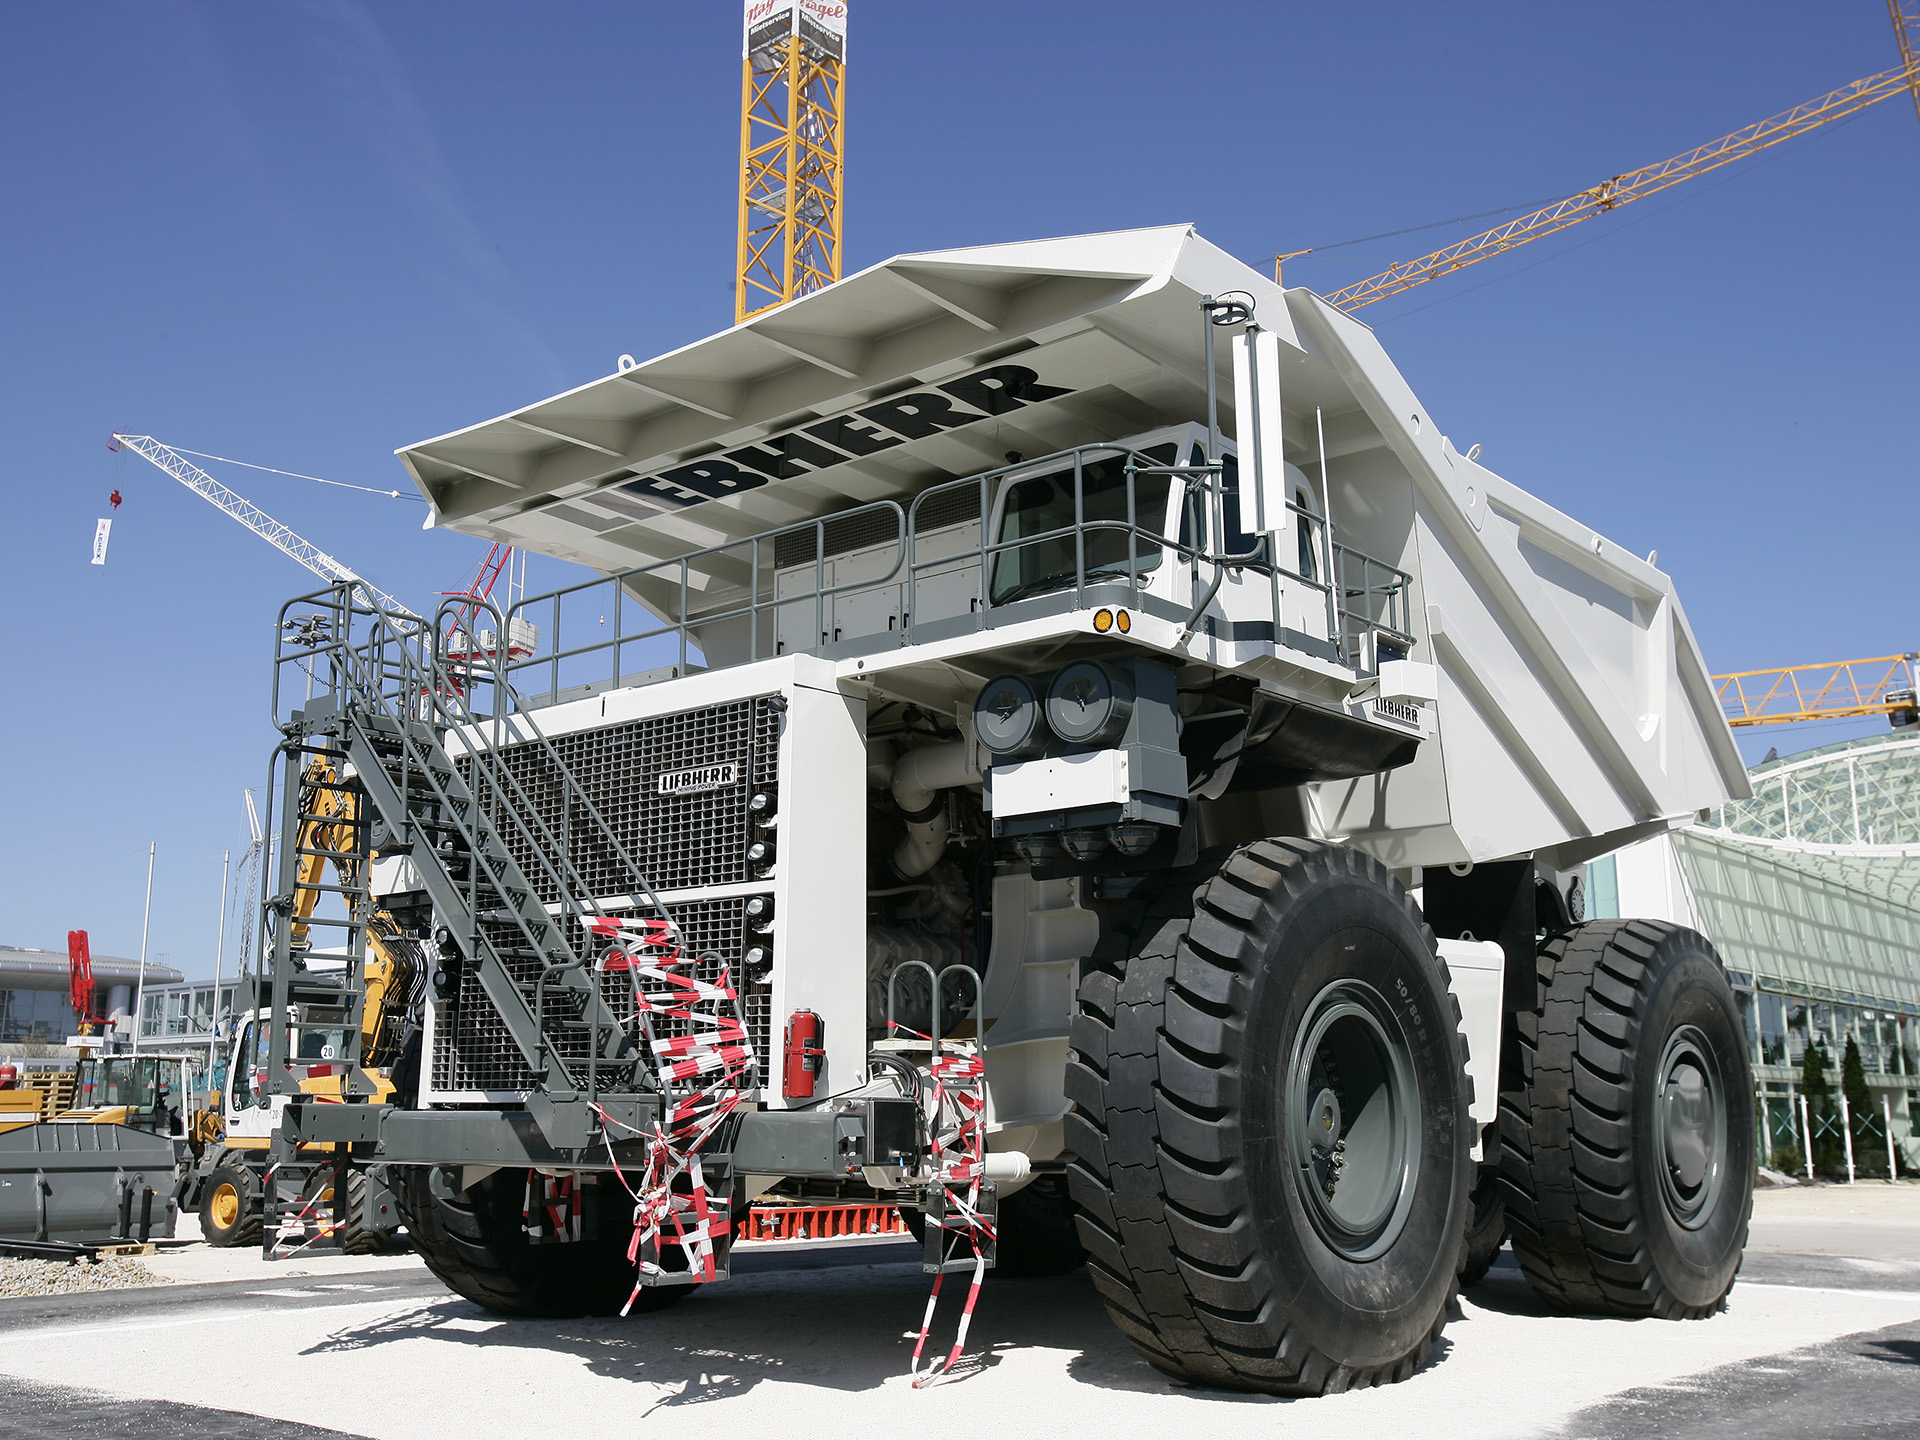 Liebherr ti274 photos photogallery with 5 pics carsbase com